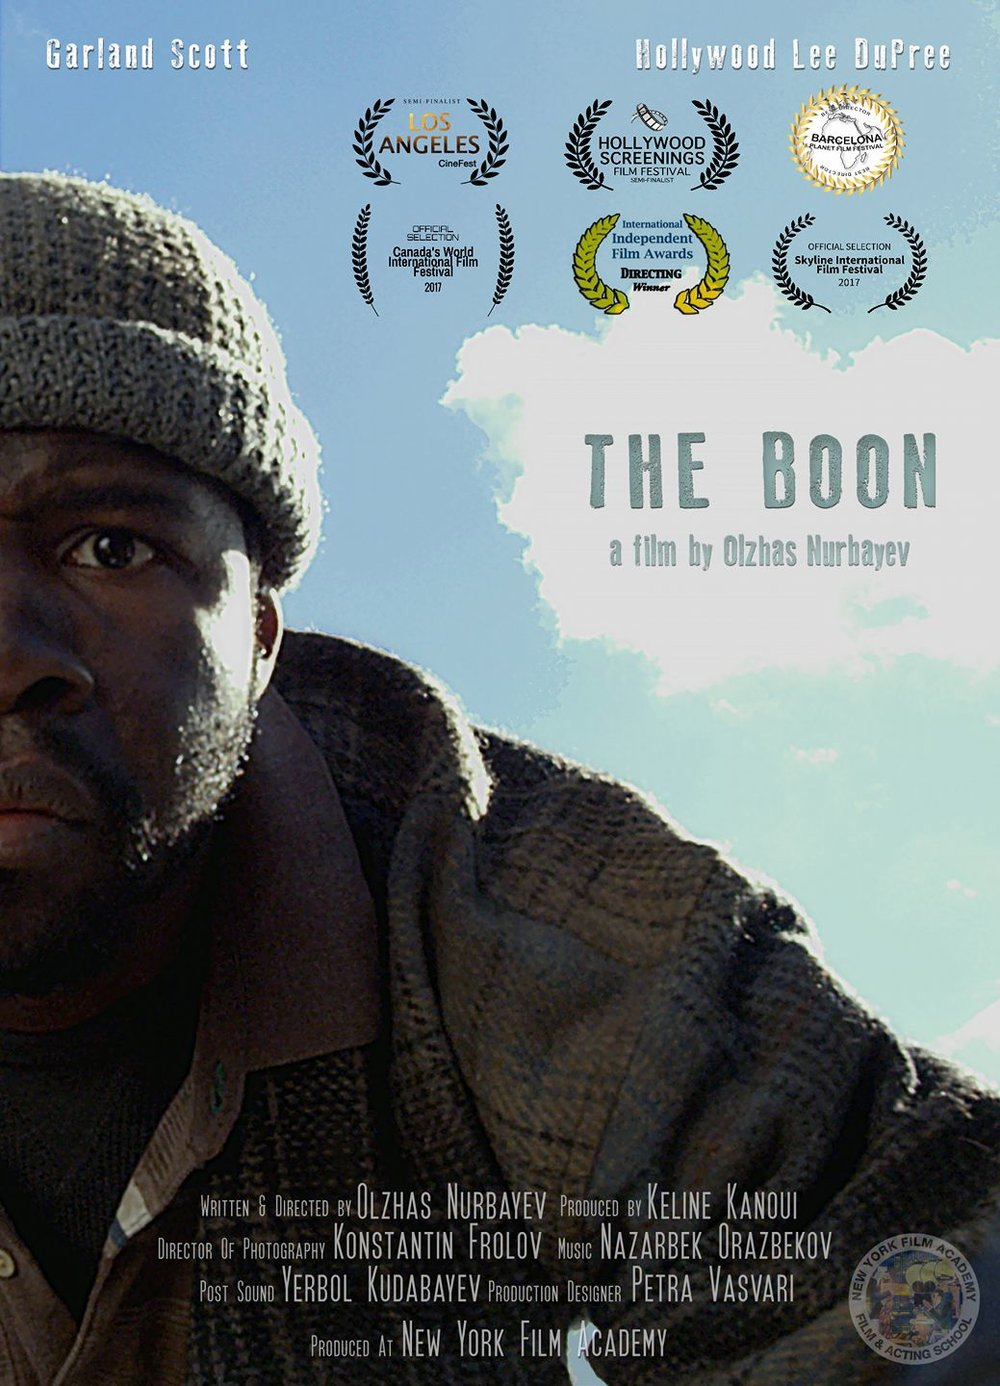 the Boon, Cinematographer Konstantin Frolov